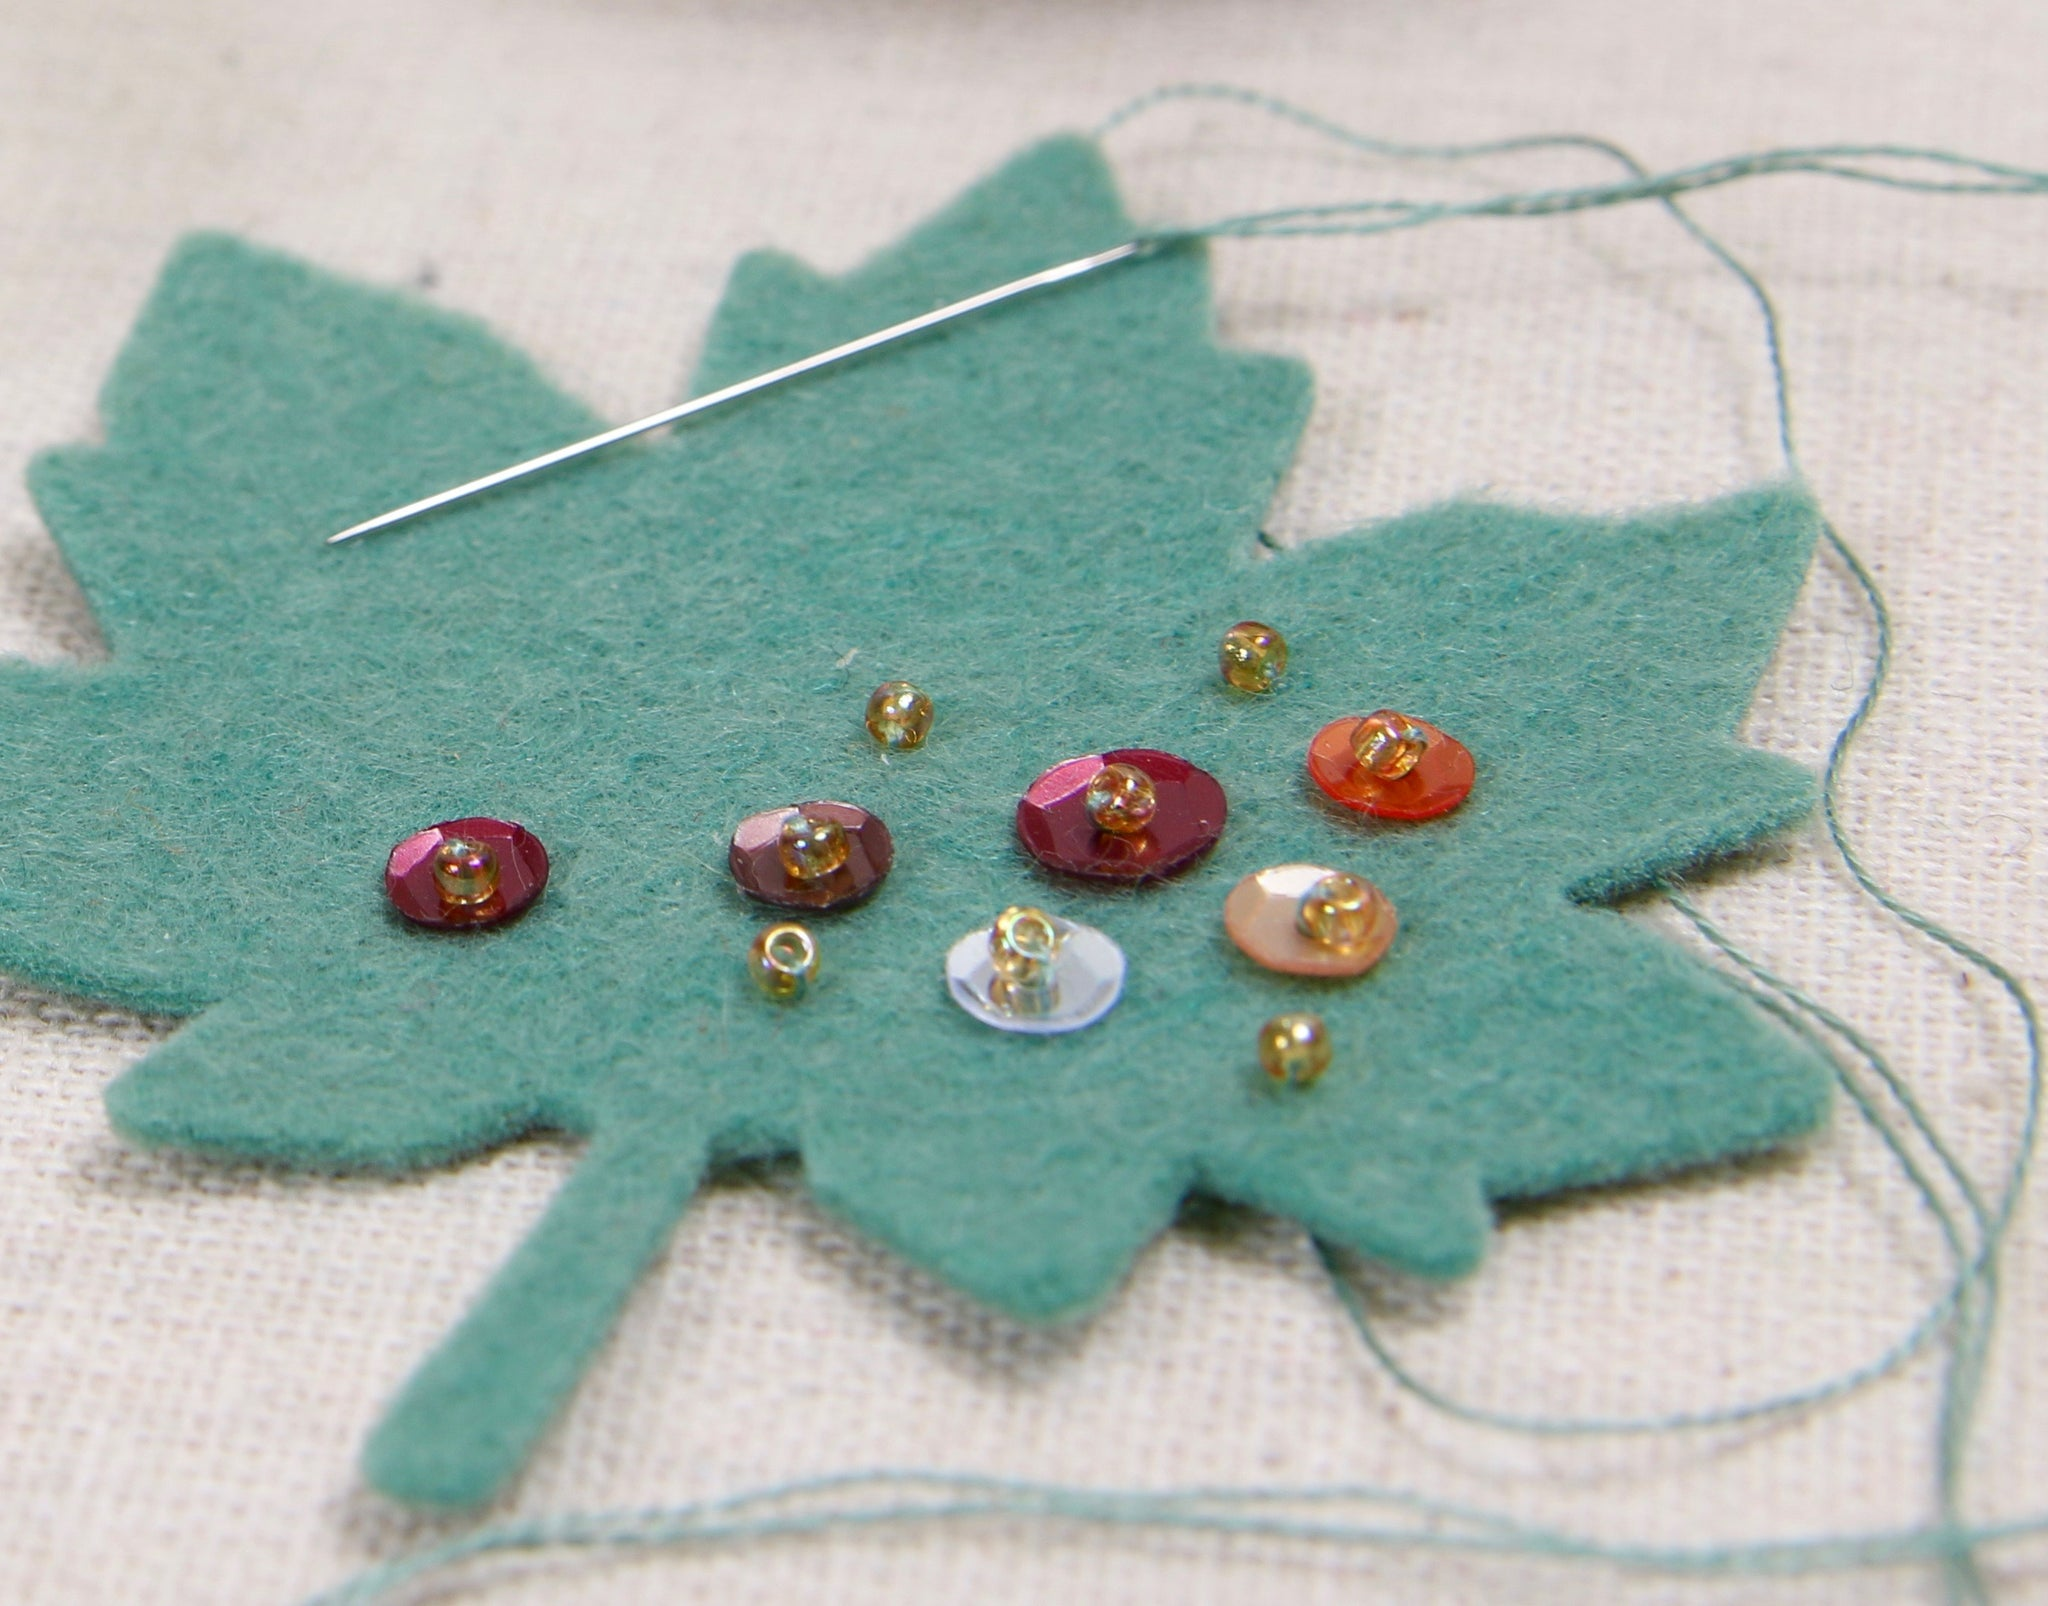 sewing sequins on felt